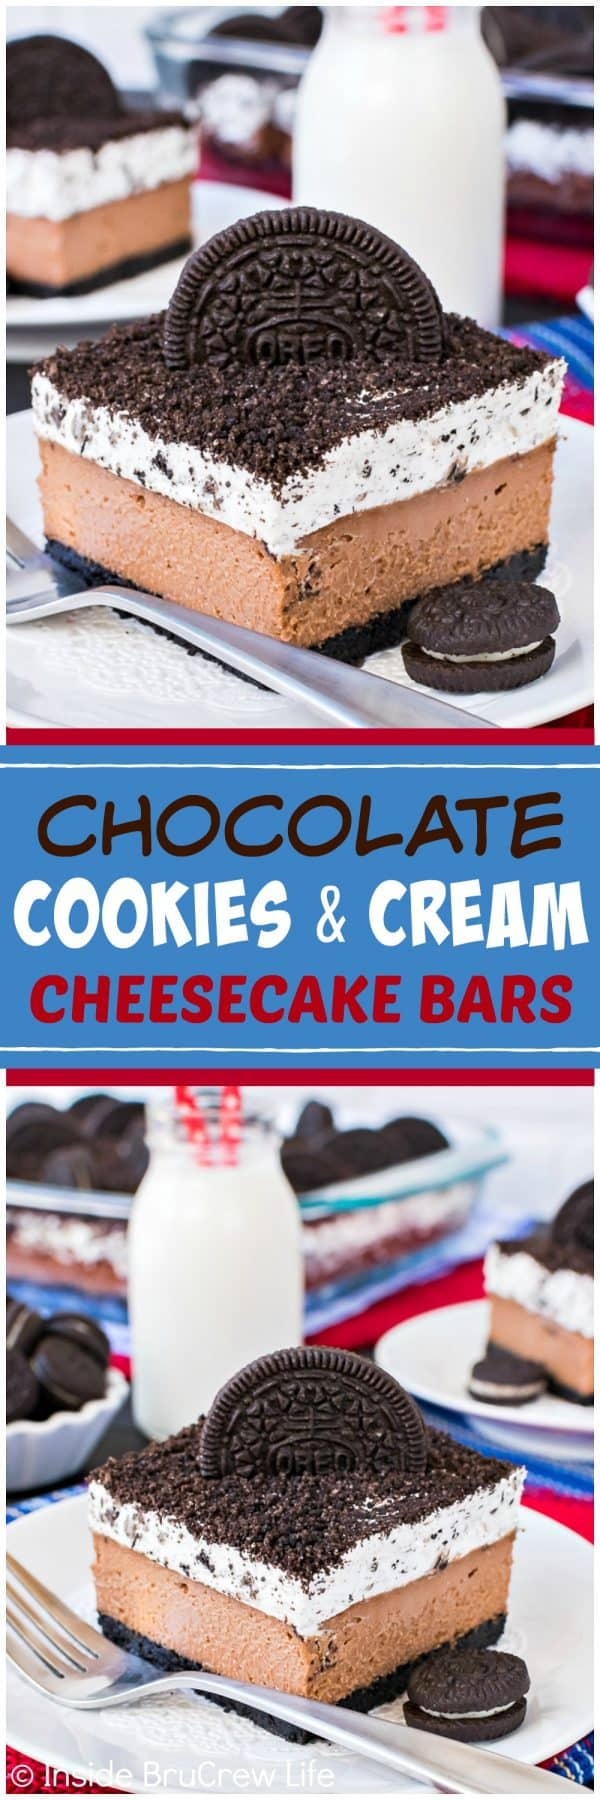 Chocolate Cookies and Cream Cheesecake Bars - layers of creamy chocolate cheesecake and a fluffy cookies and cream mousse will make this disappear in a hurry. Great recipe to share for dessert!